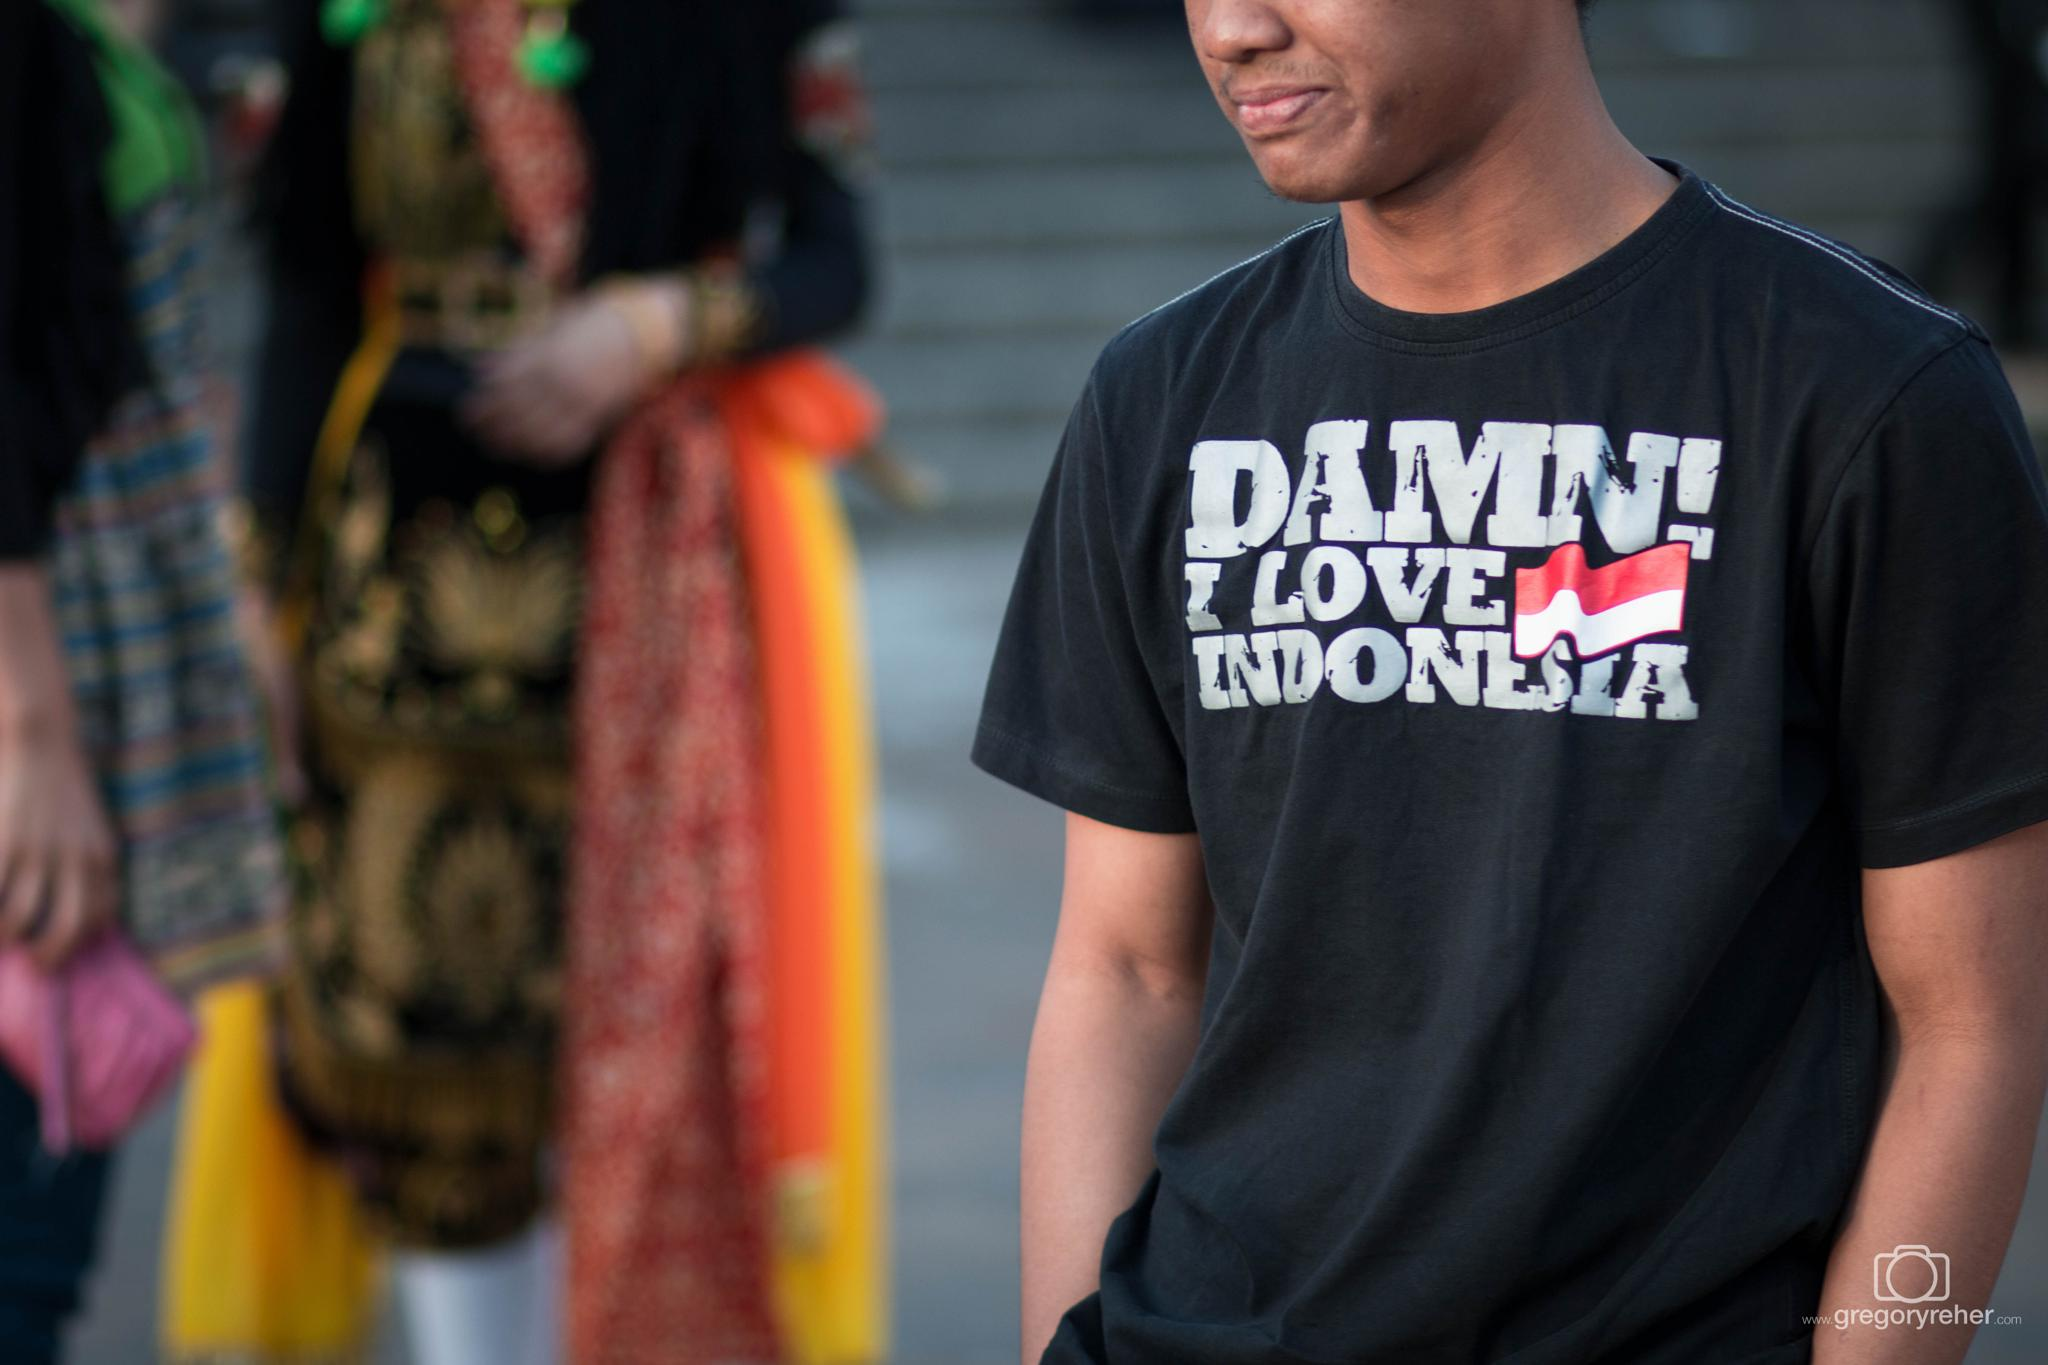 Damn, I Love Indonesia by gregreher